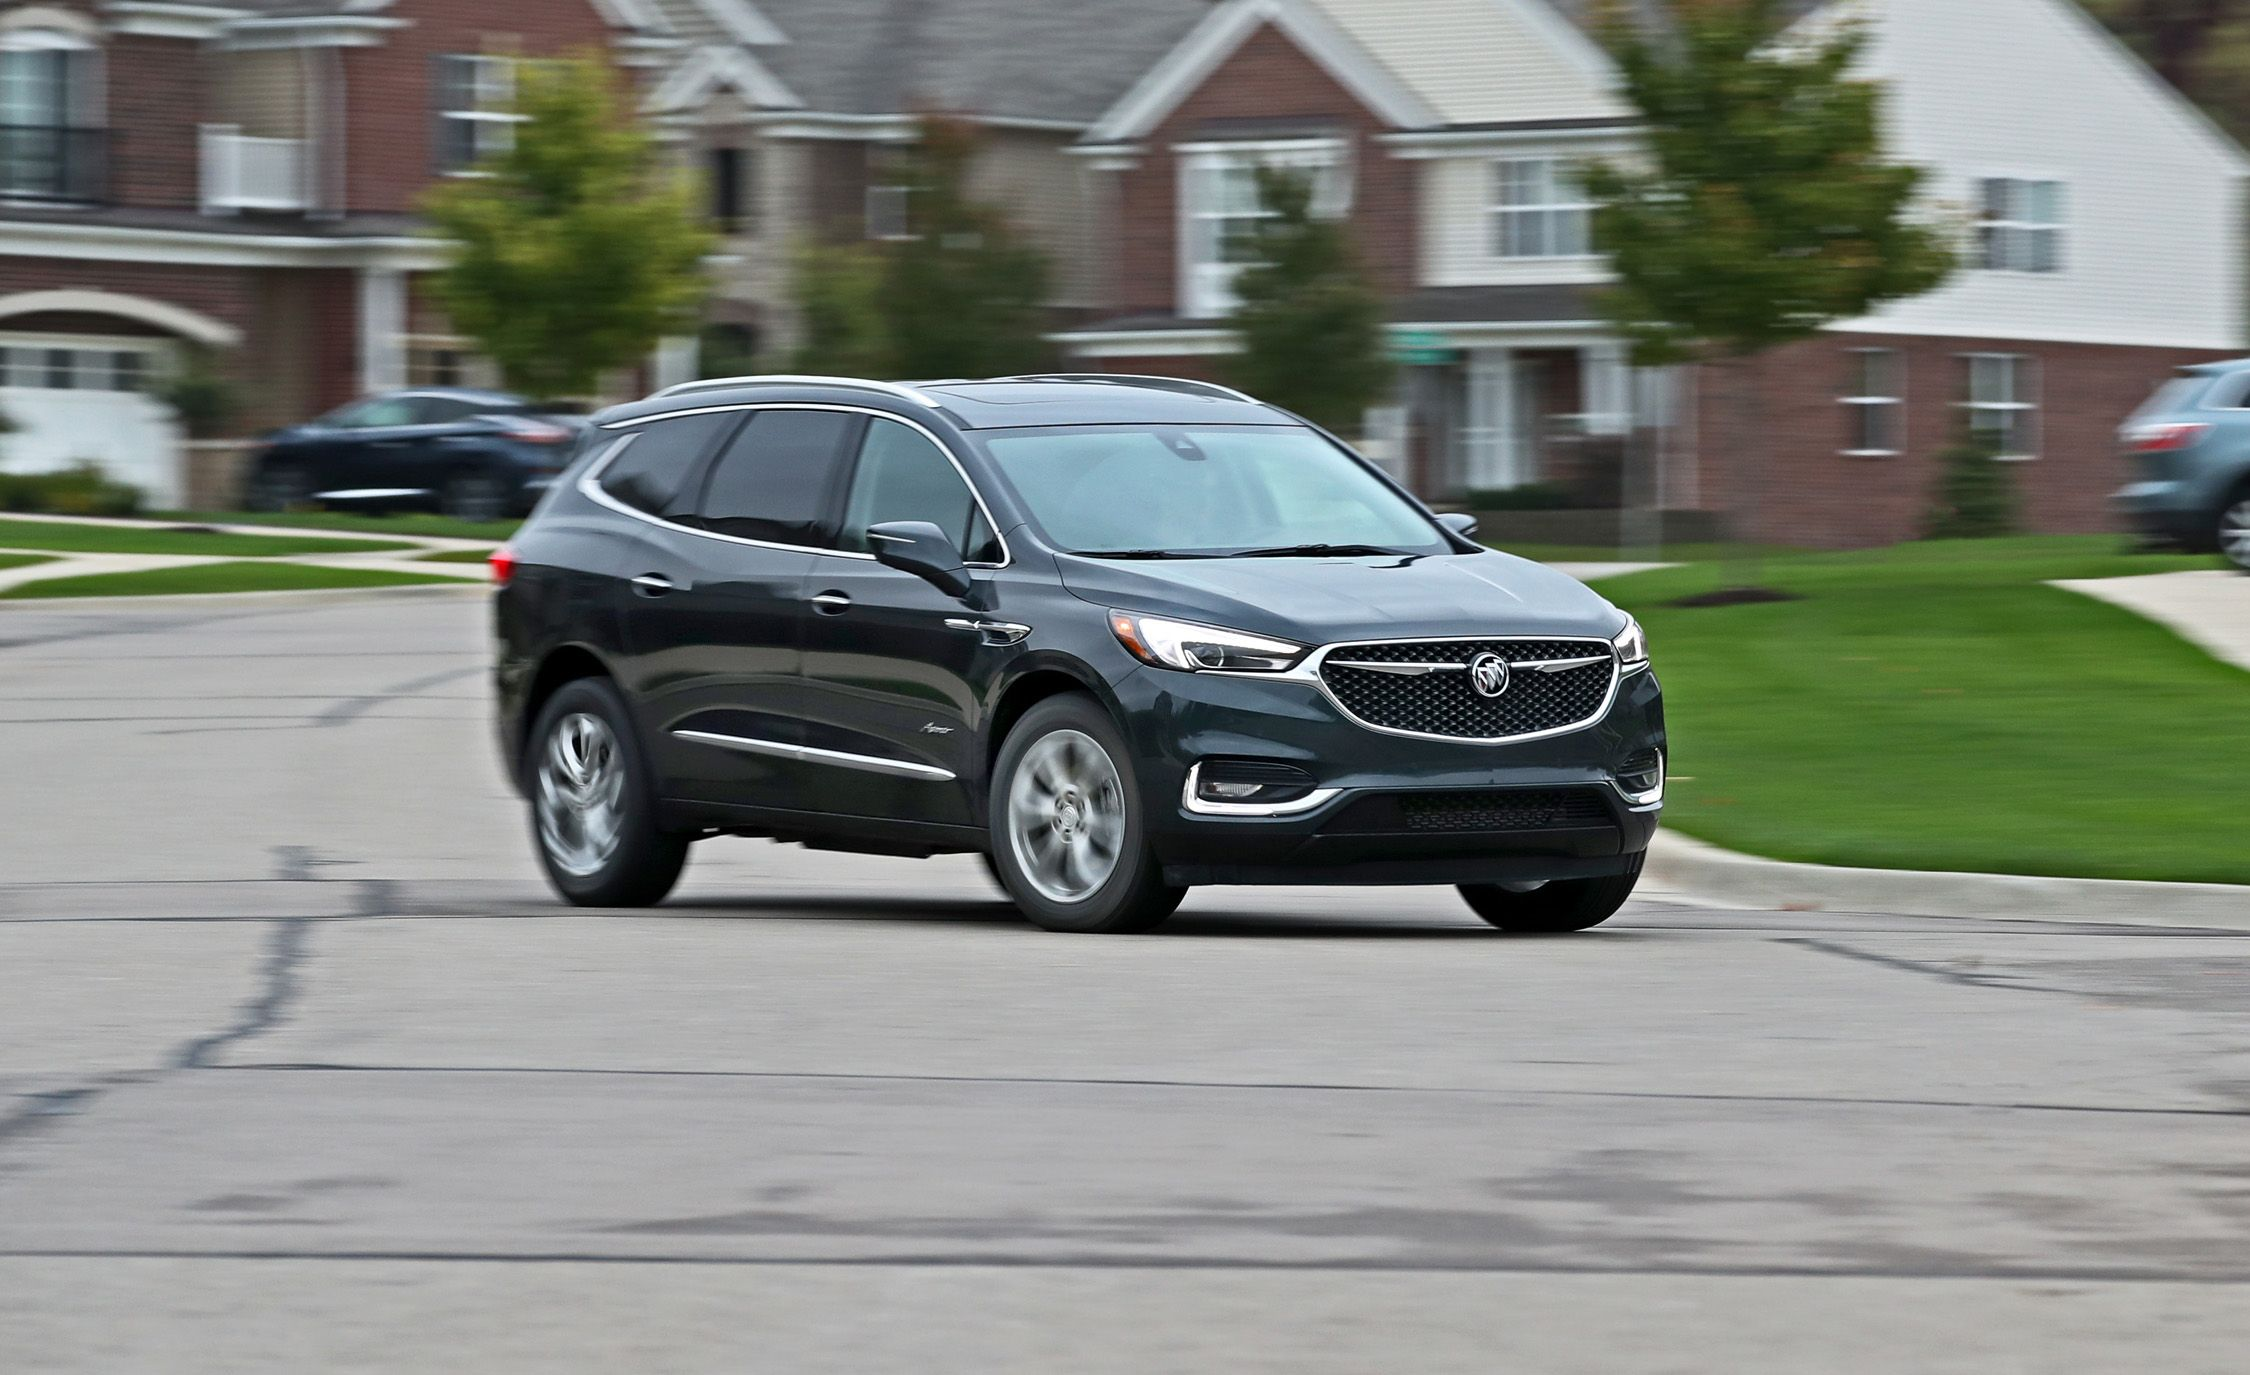 this performance canada ca size crossover enclave luxury buick is large what suv full